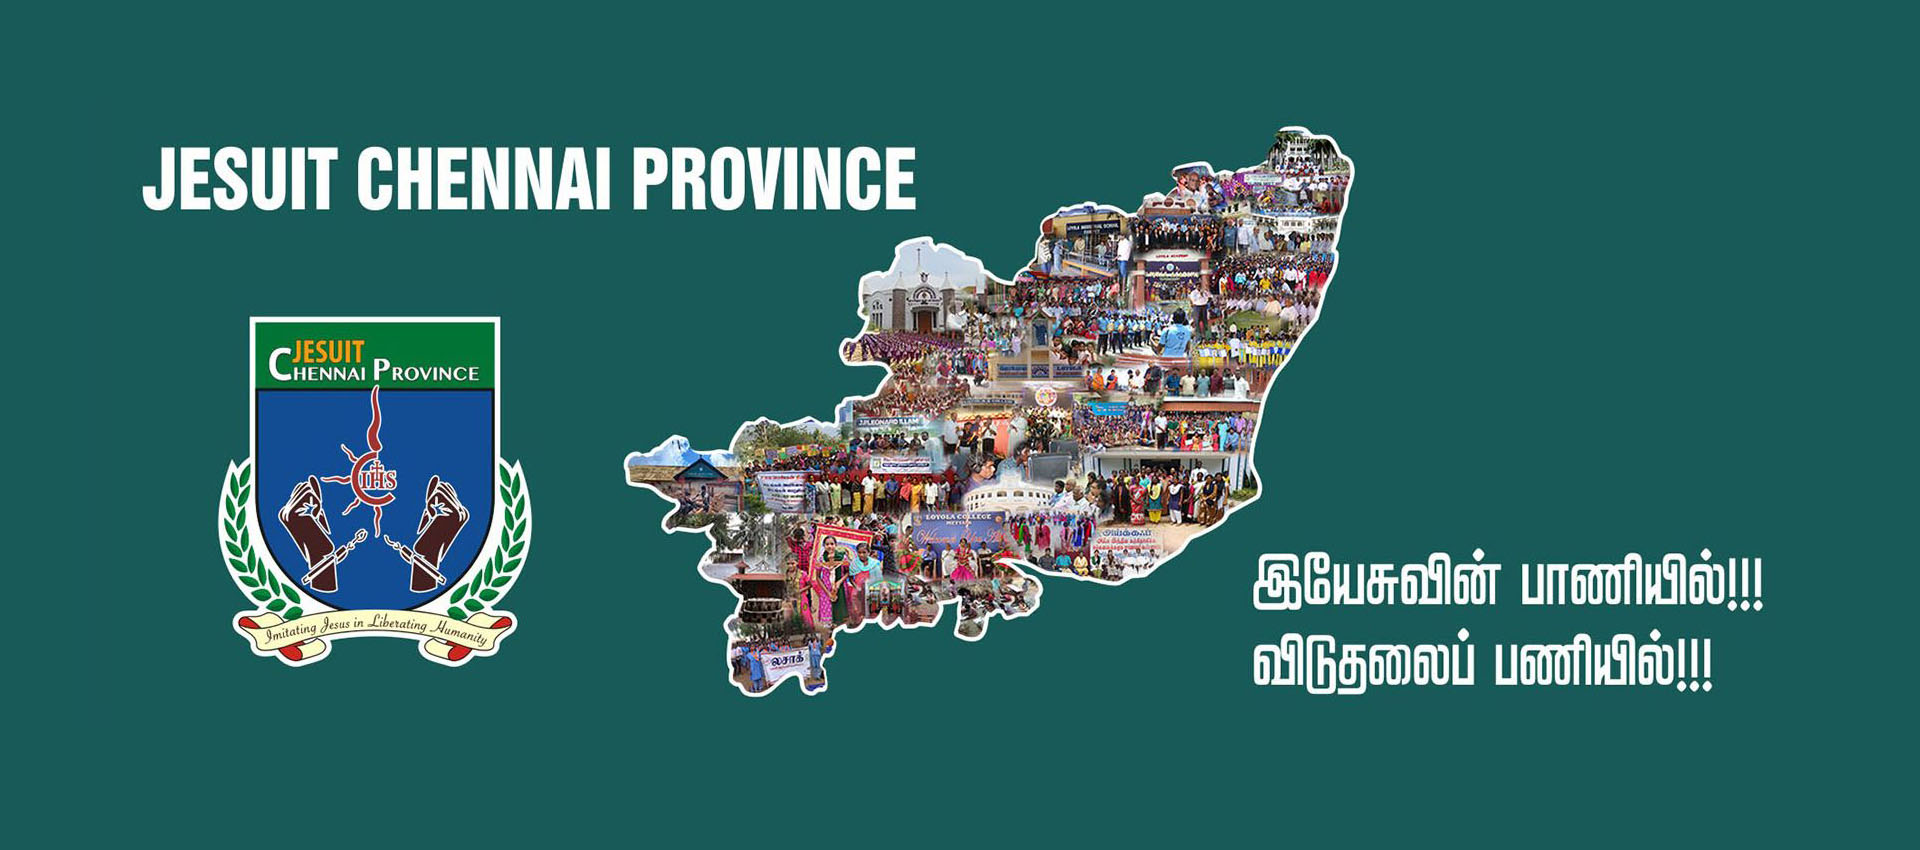 A rare event: the creation of an additional Jesuit Province: the Chennai Province